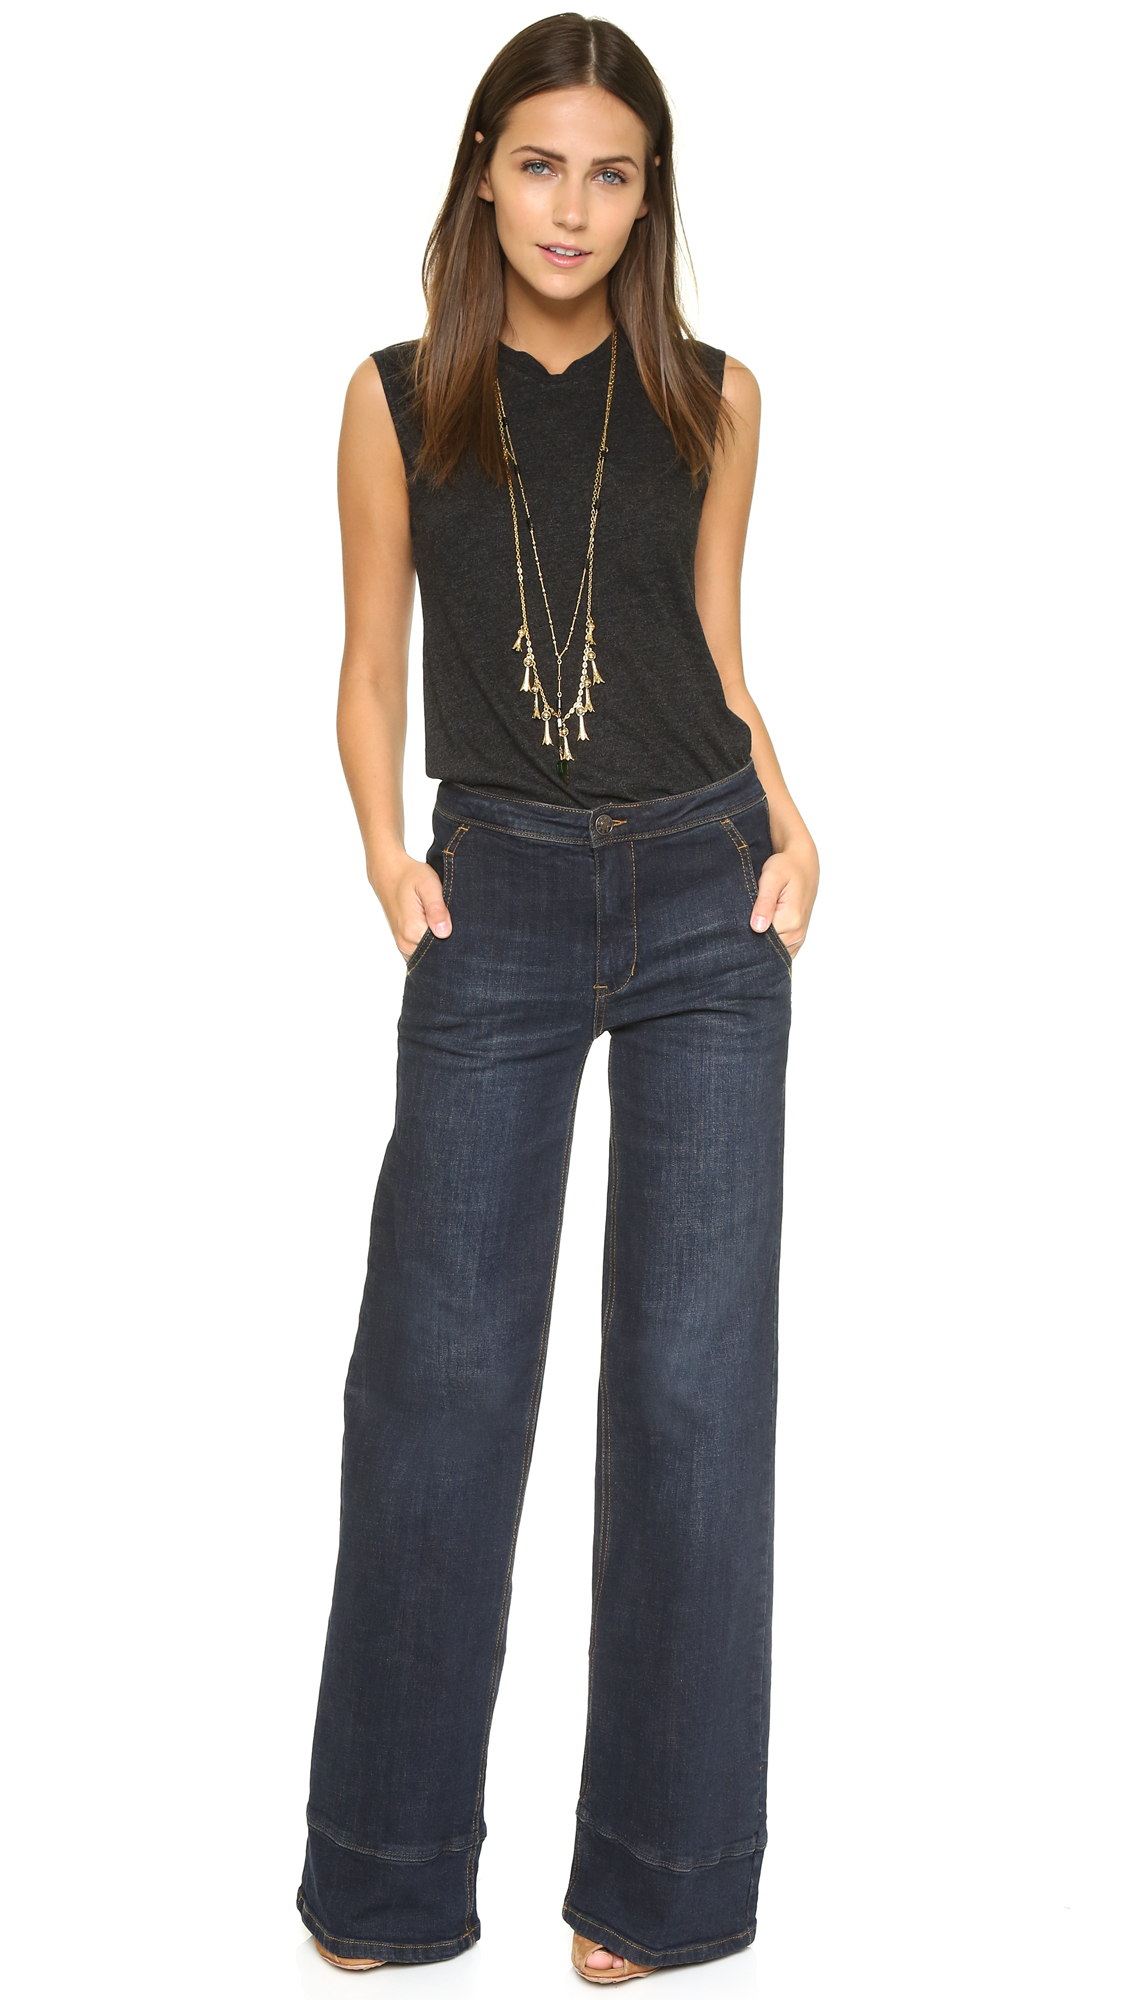 Shop nichapie.ml for high waist and high rise jeans for women! From stretchy, black high waist distressed skinny jeans to light fading distressed hi-rise jeans, we love this high waisted look that's totally trending.